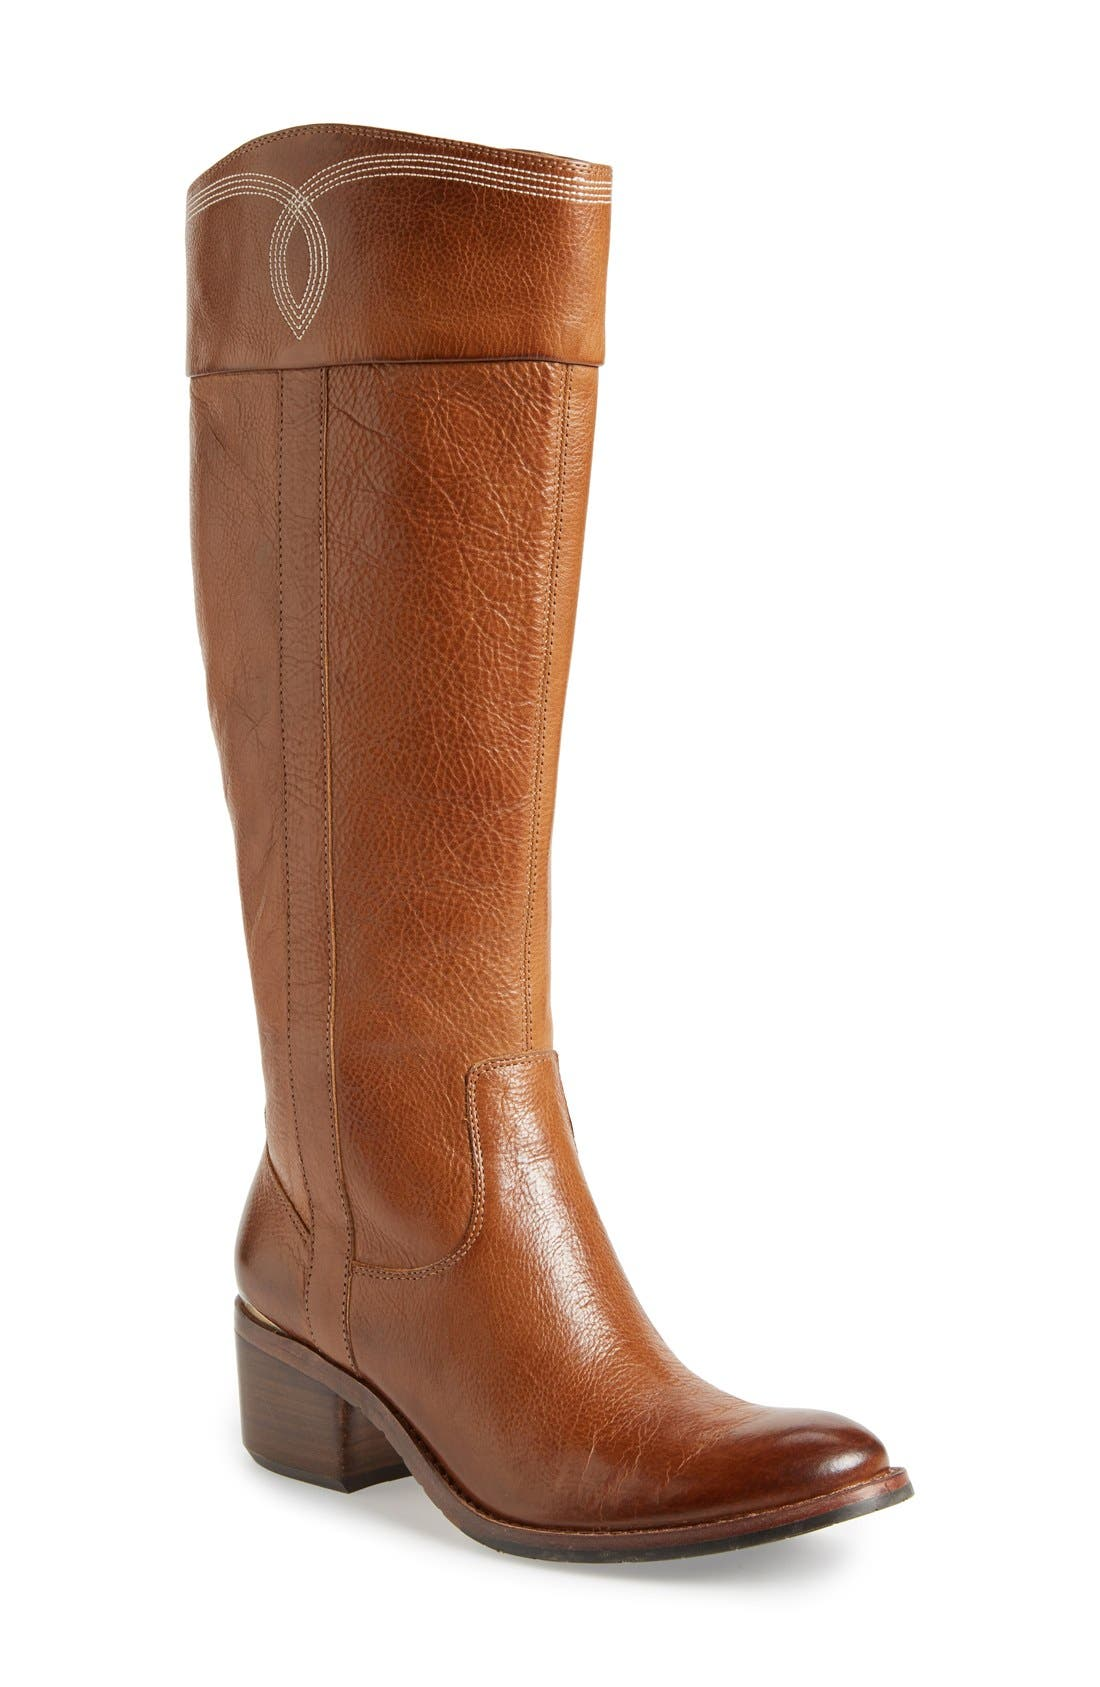 Main Image - Donald J Pliner 'Willi' Tall Boot (Women)